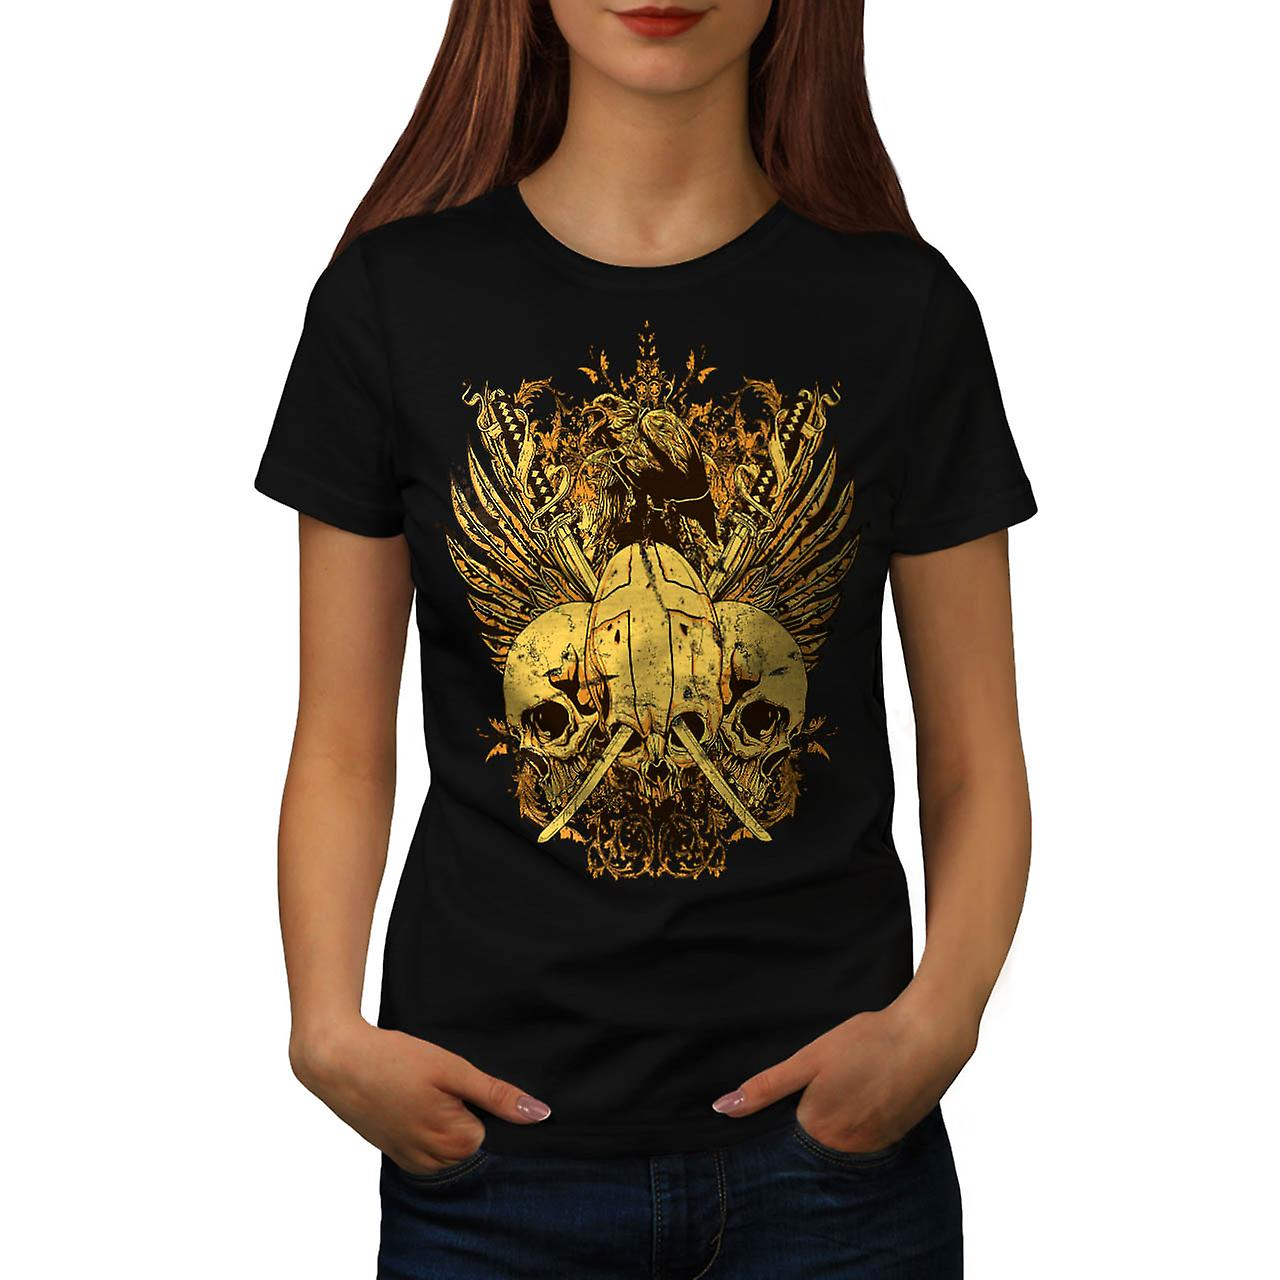 T-shirt nero donne teschio spada lotta ascia morte Bird | Wellcoda